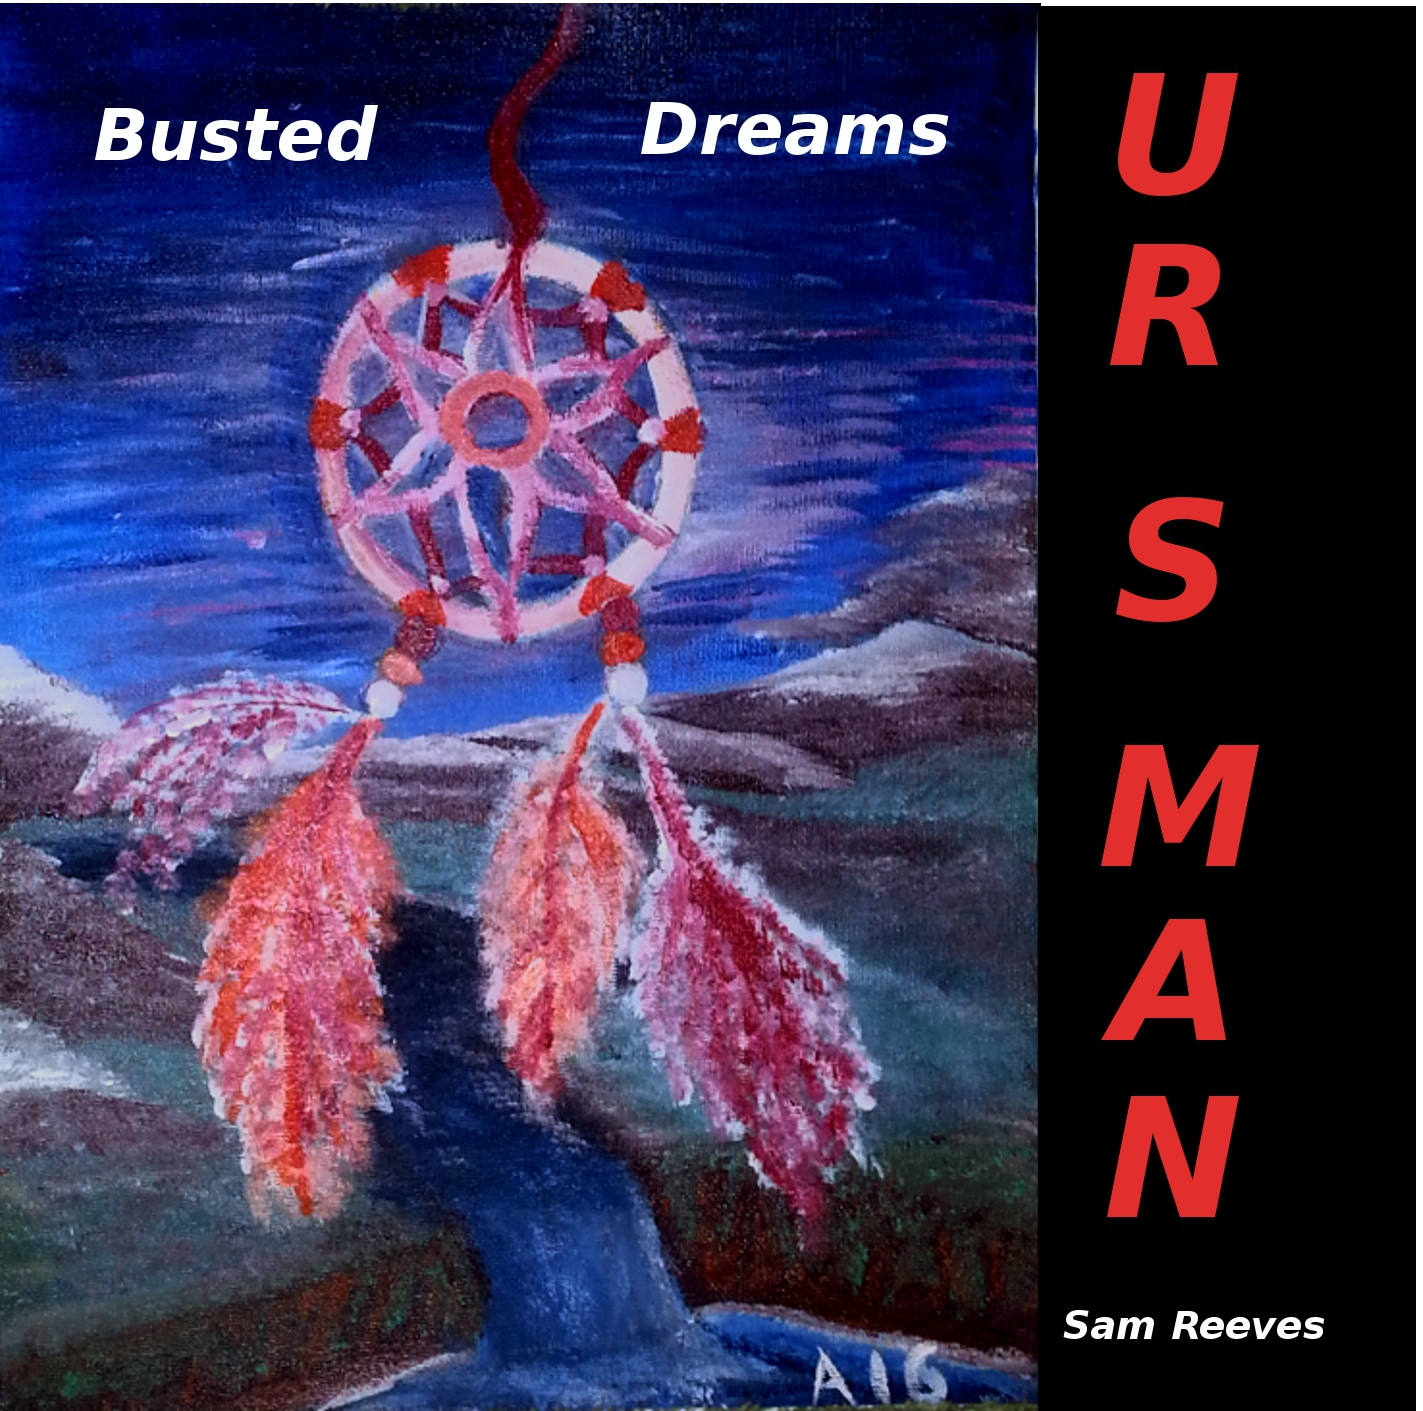 Busted Dreams CD by UR S MAN